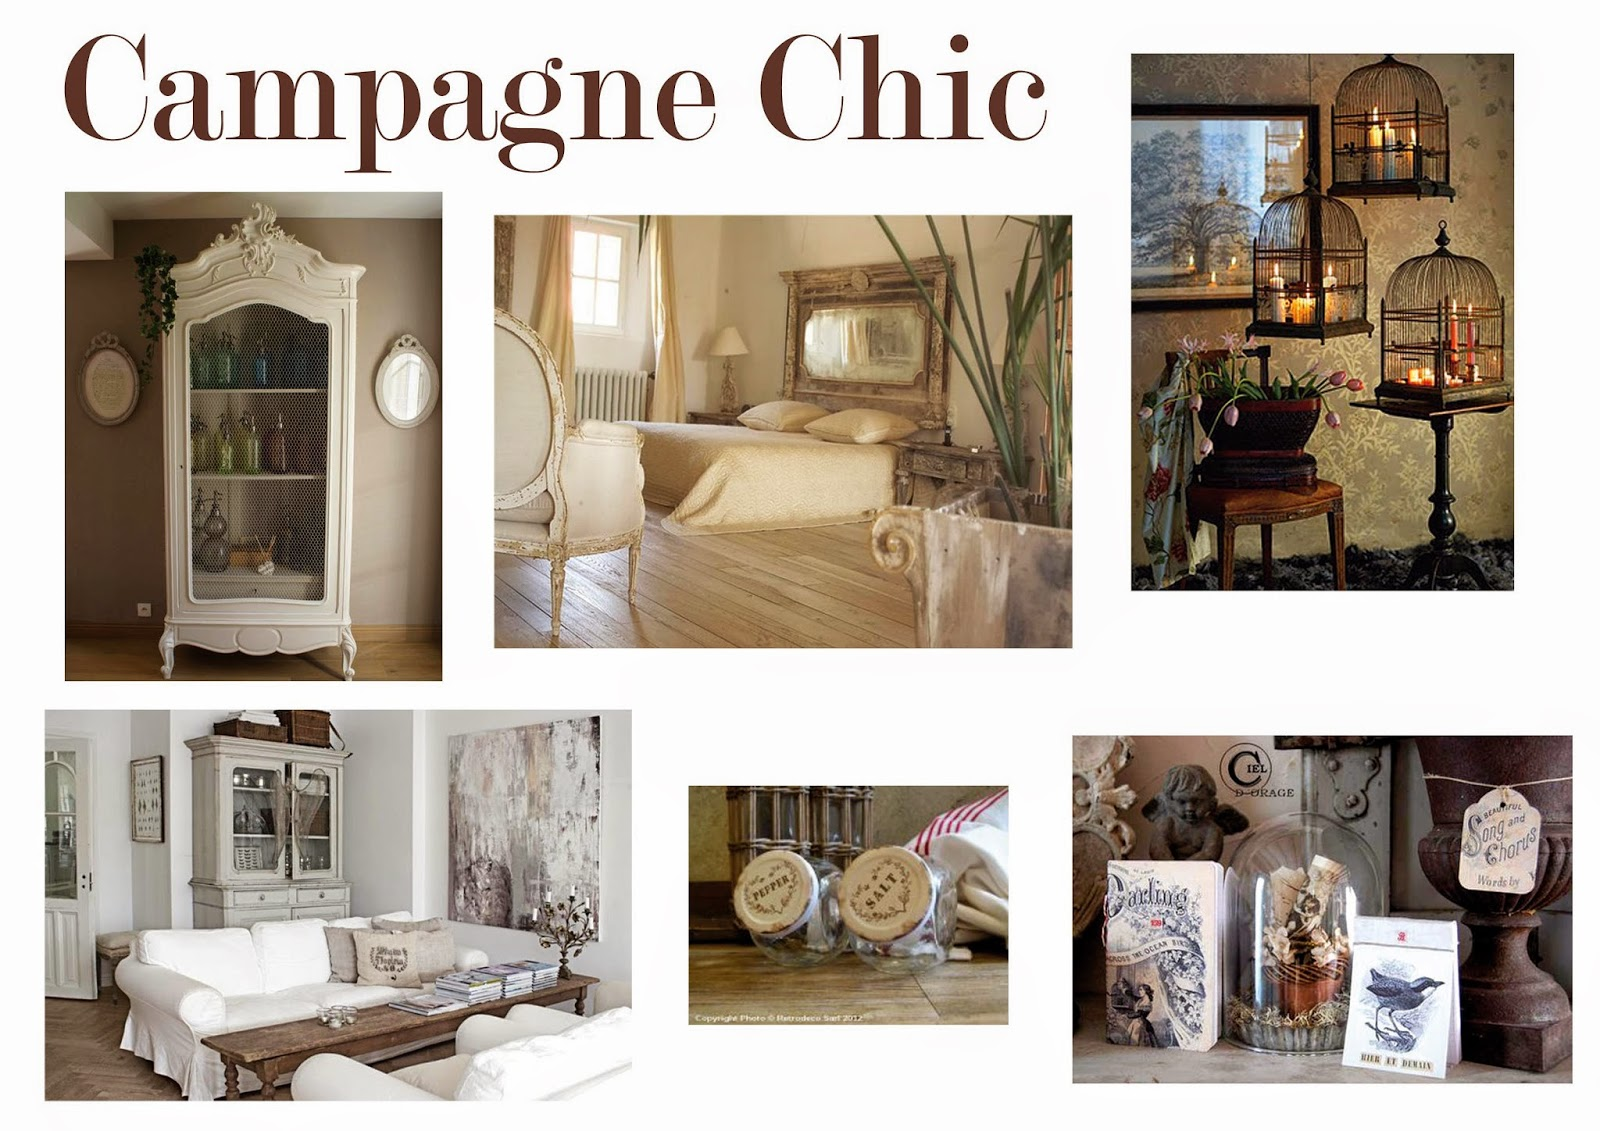 dcoration campagne chic dco campagne chic mobilier. Black Bedroom Furniture Sets. Home Design Ideas